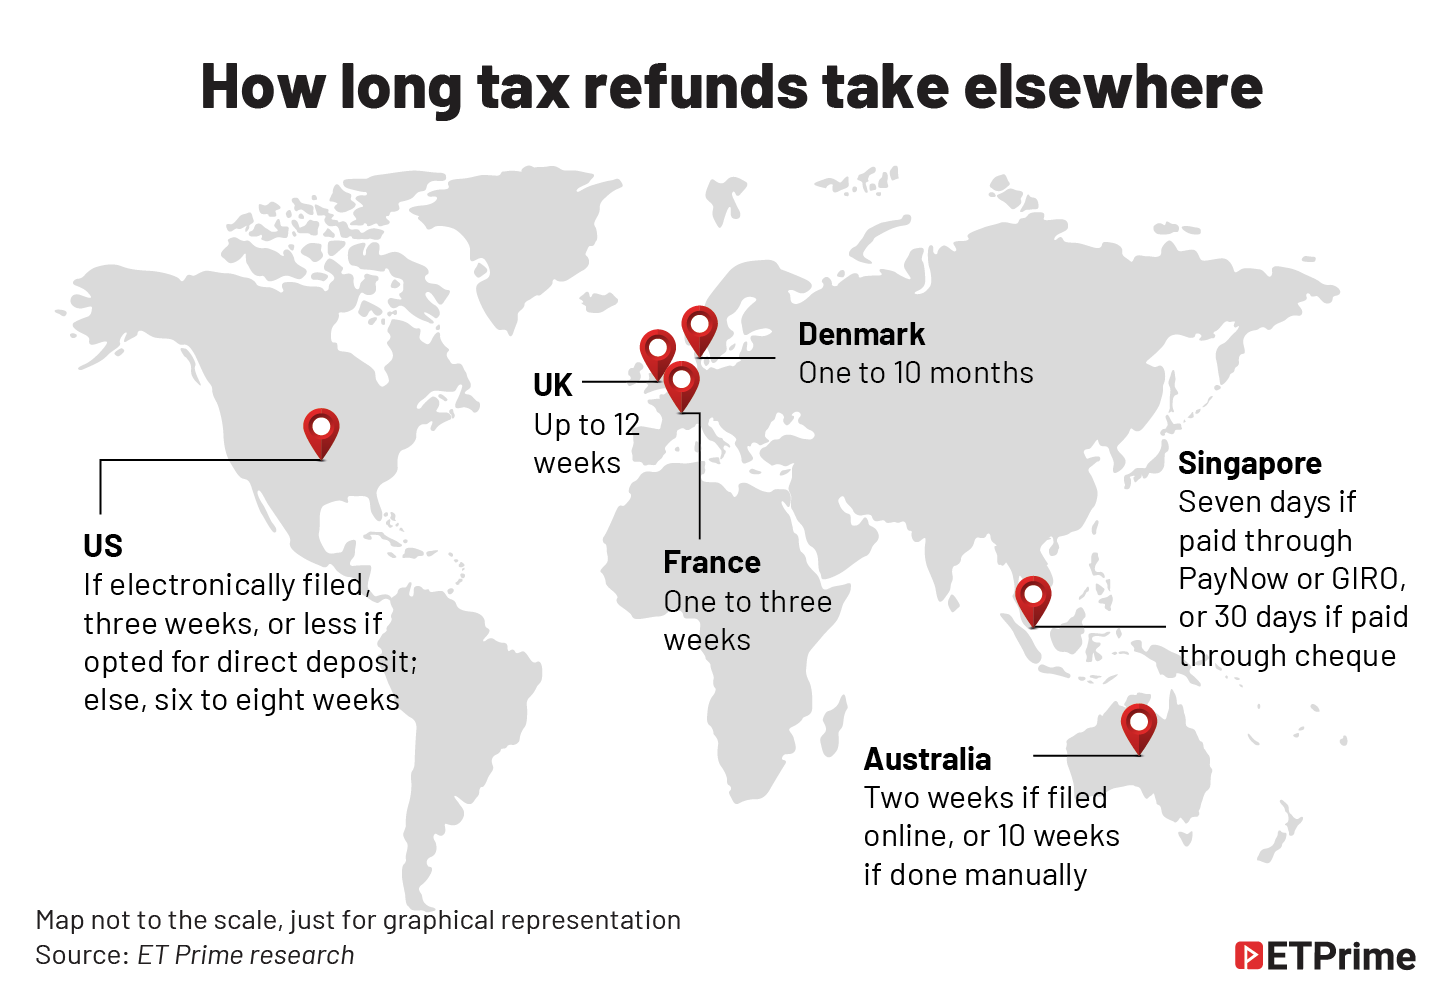 How long tax refunds take elsewhere @2x